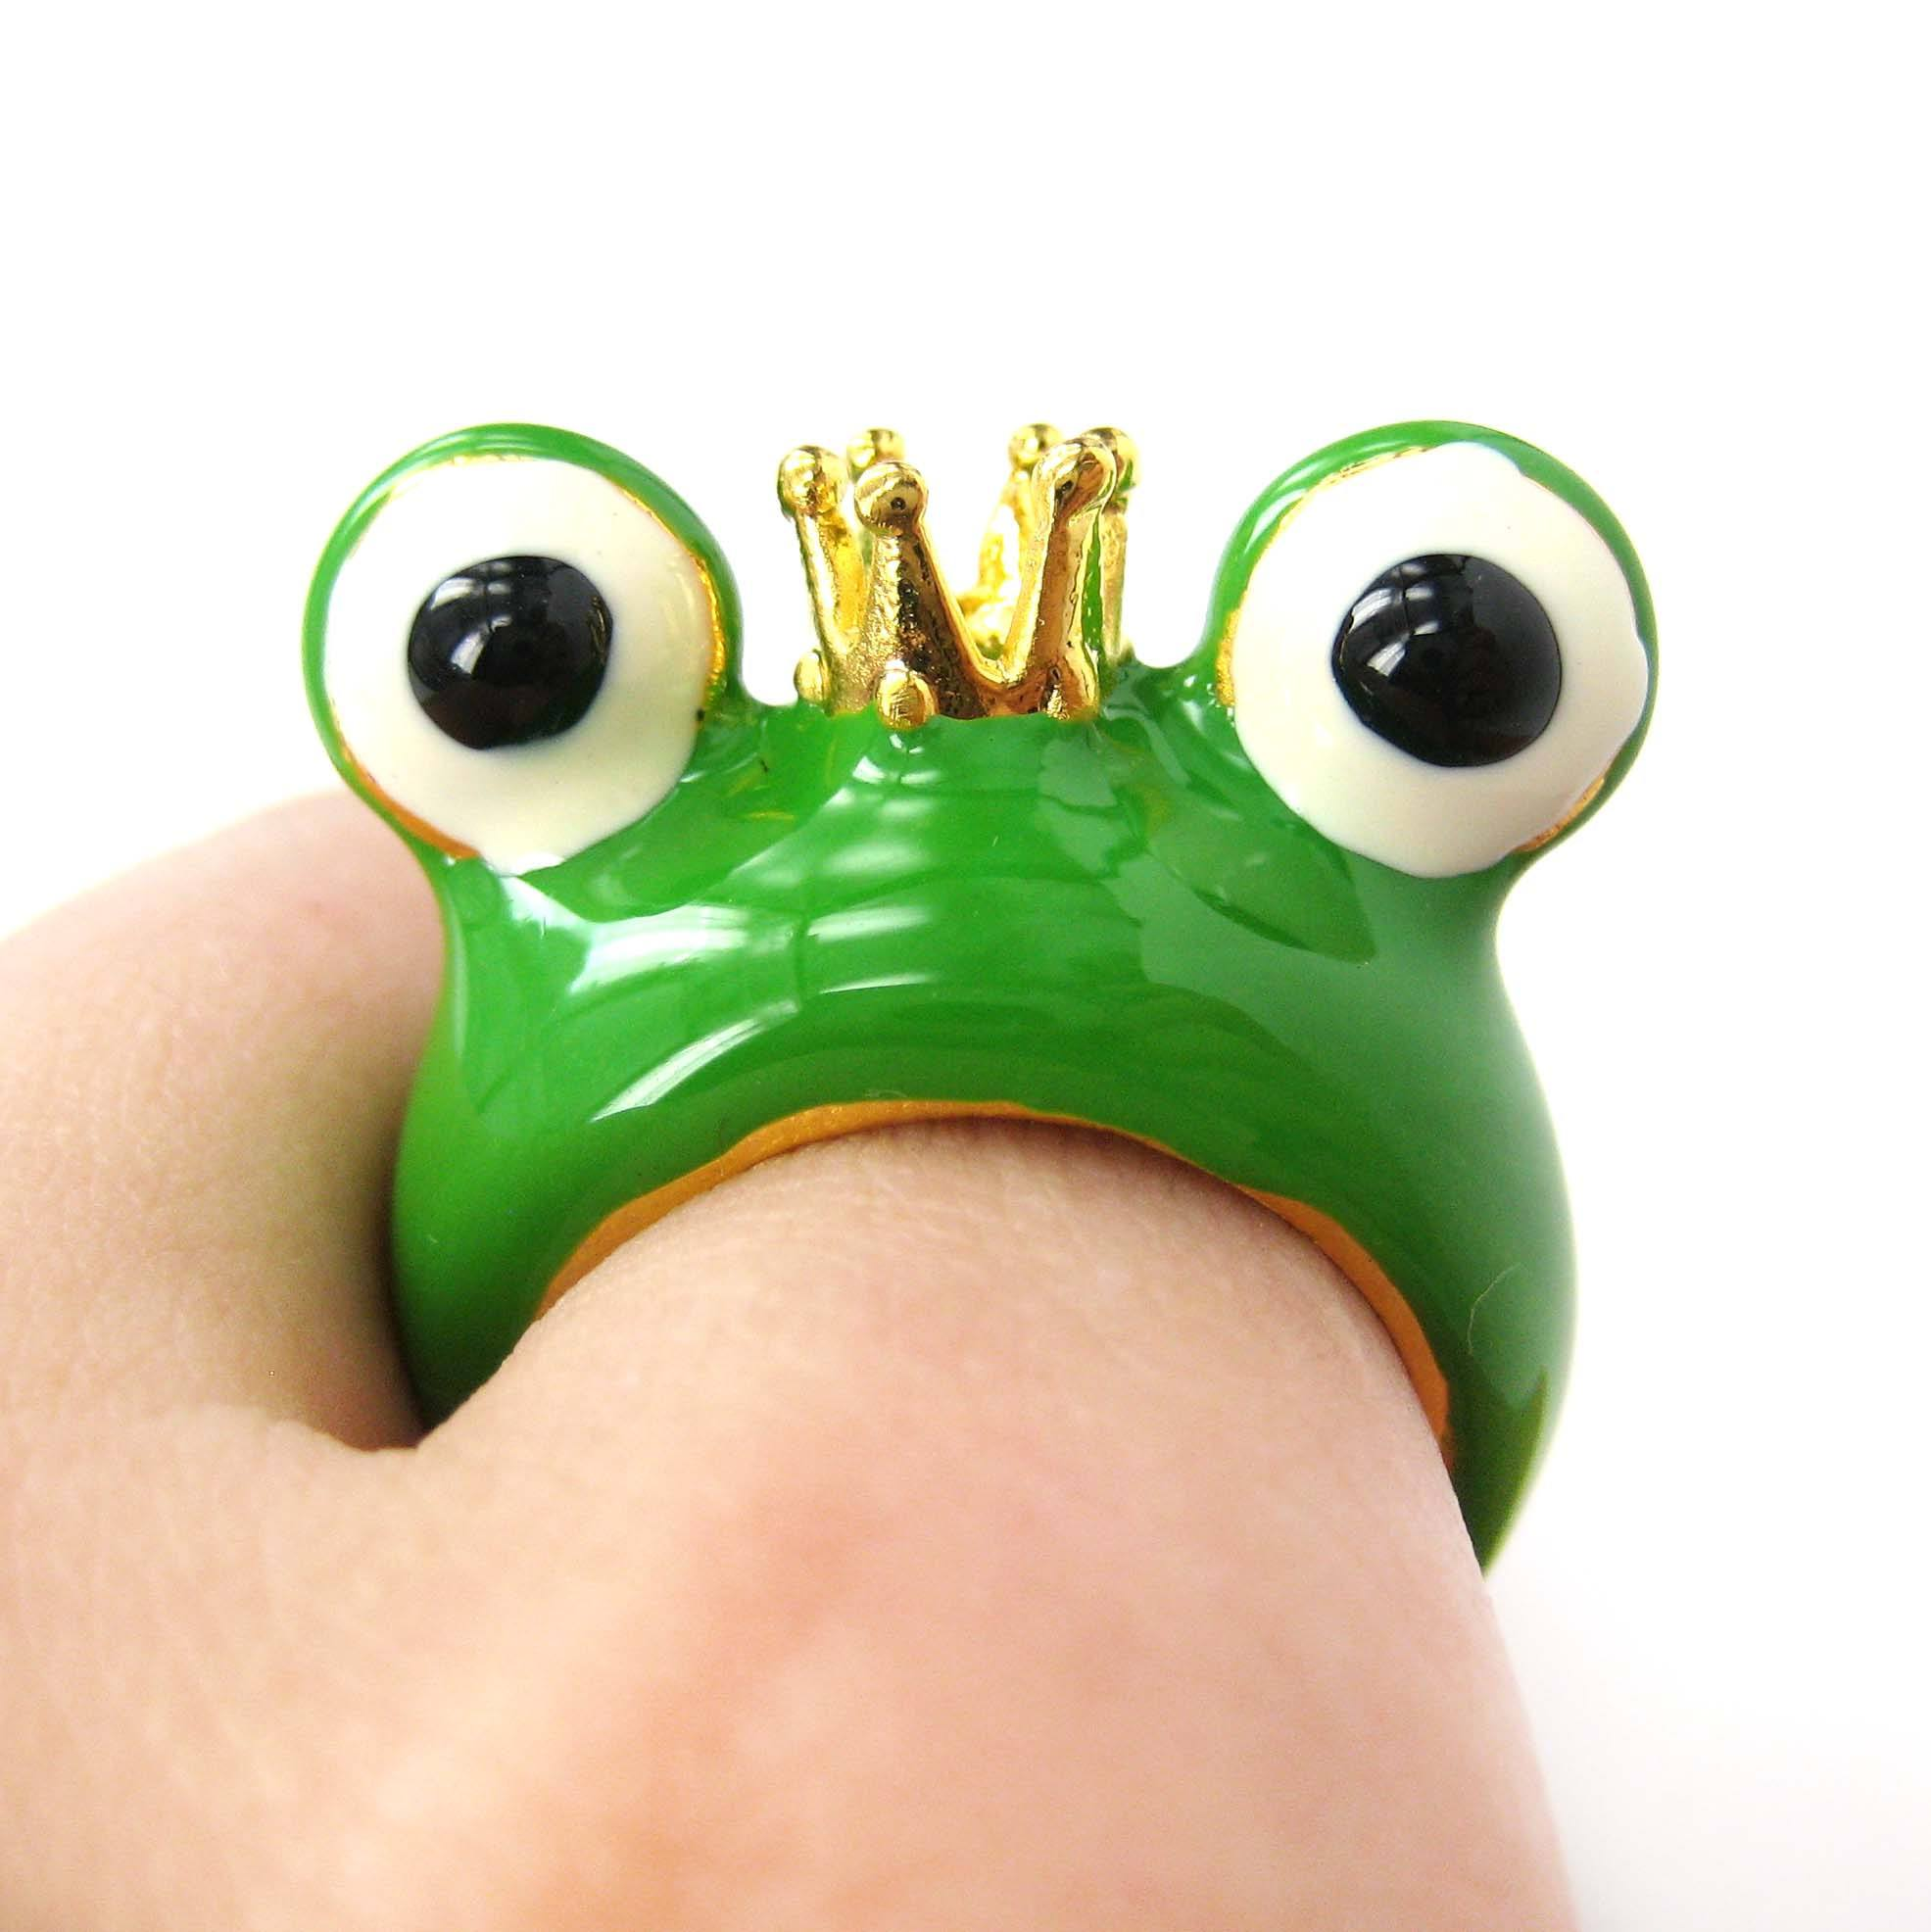 frog-prince-with-crown-enamel-animal-ring-in-us-size-6-5-and-7-limited-edition